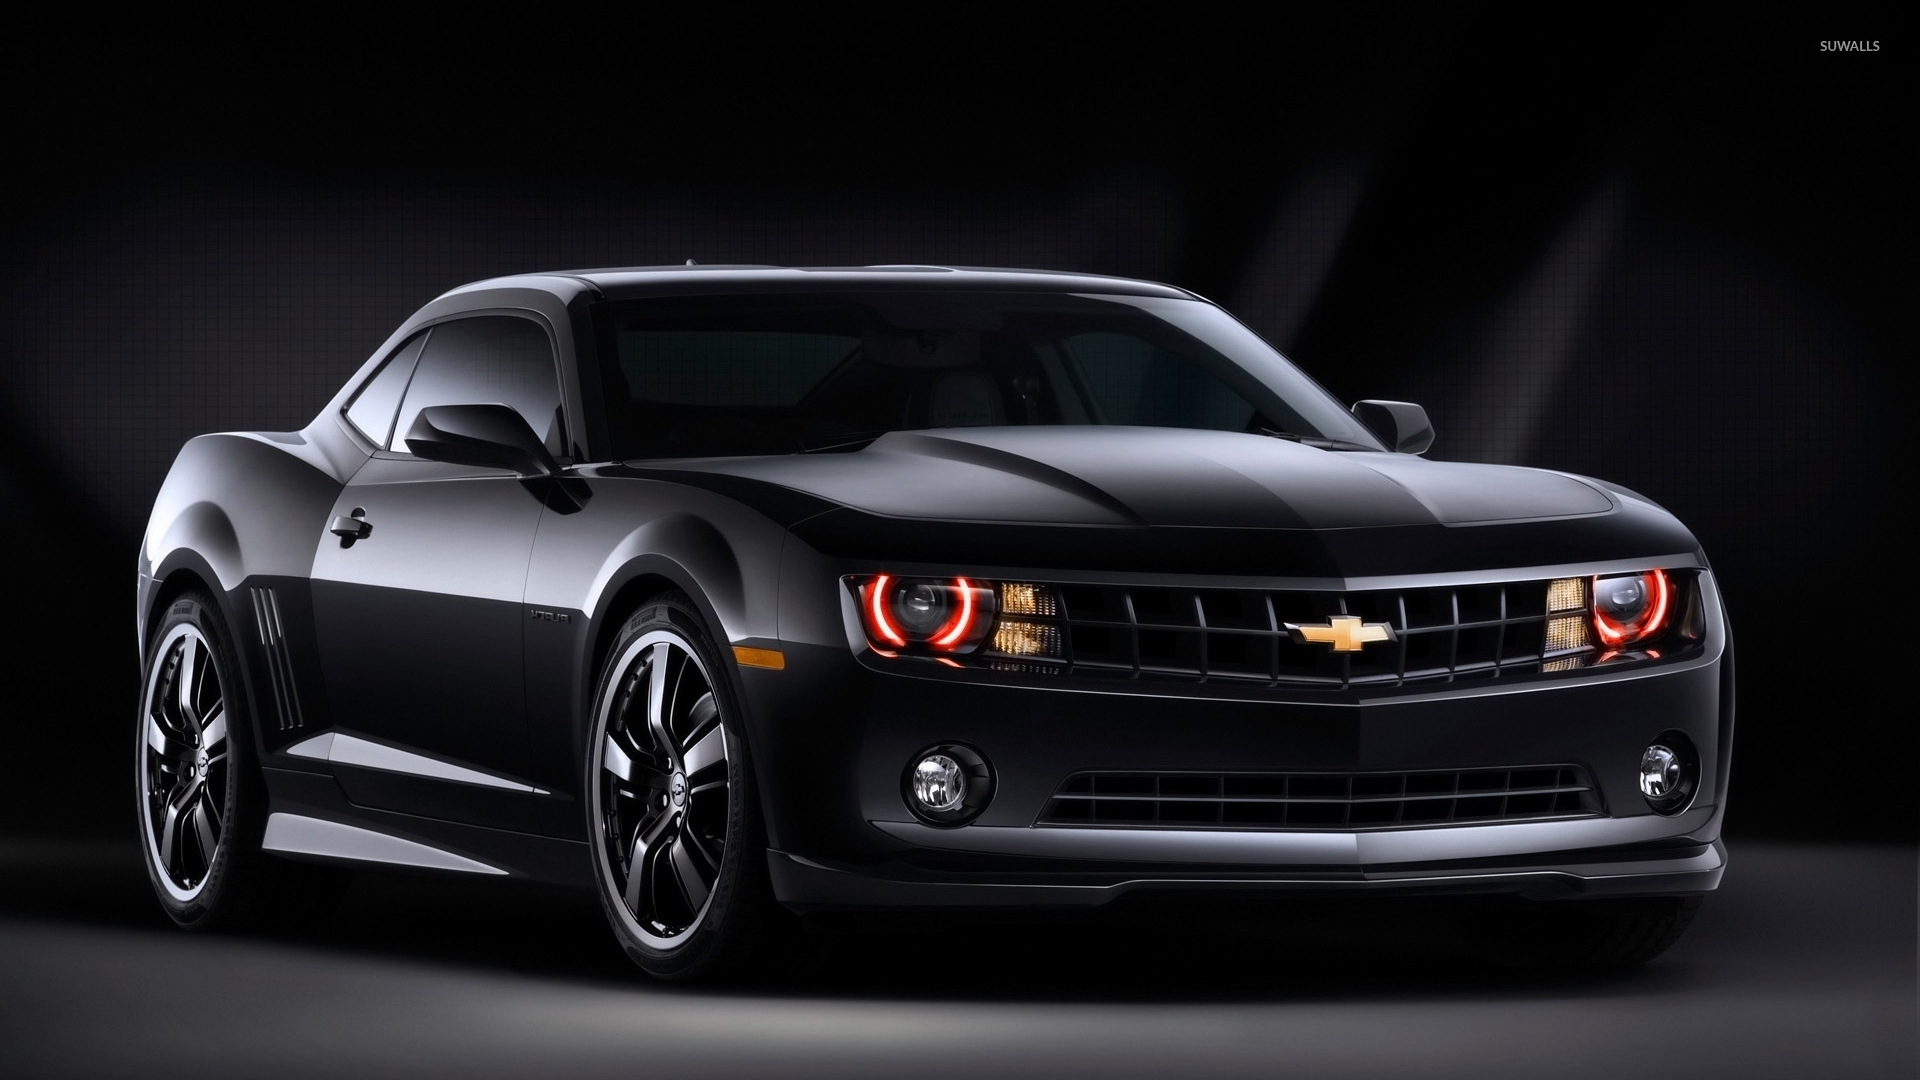 Black Chevrolet Camaro Front Side View Wallpaper Car